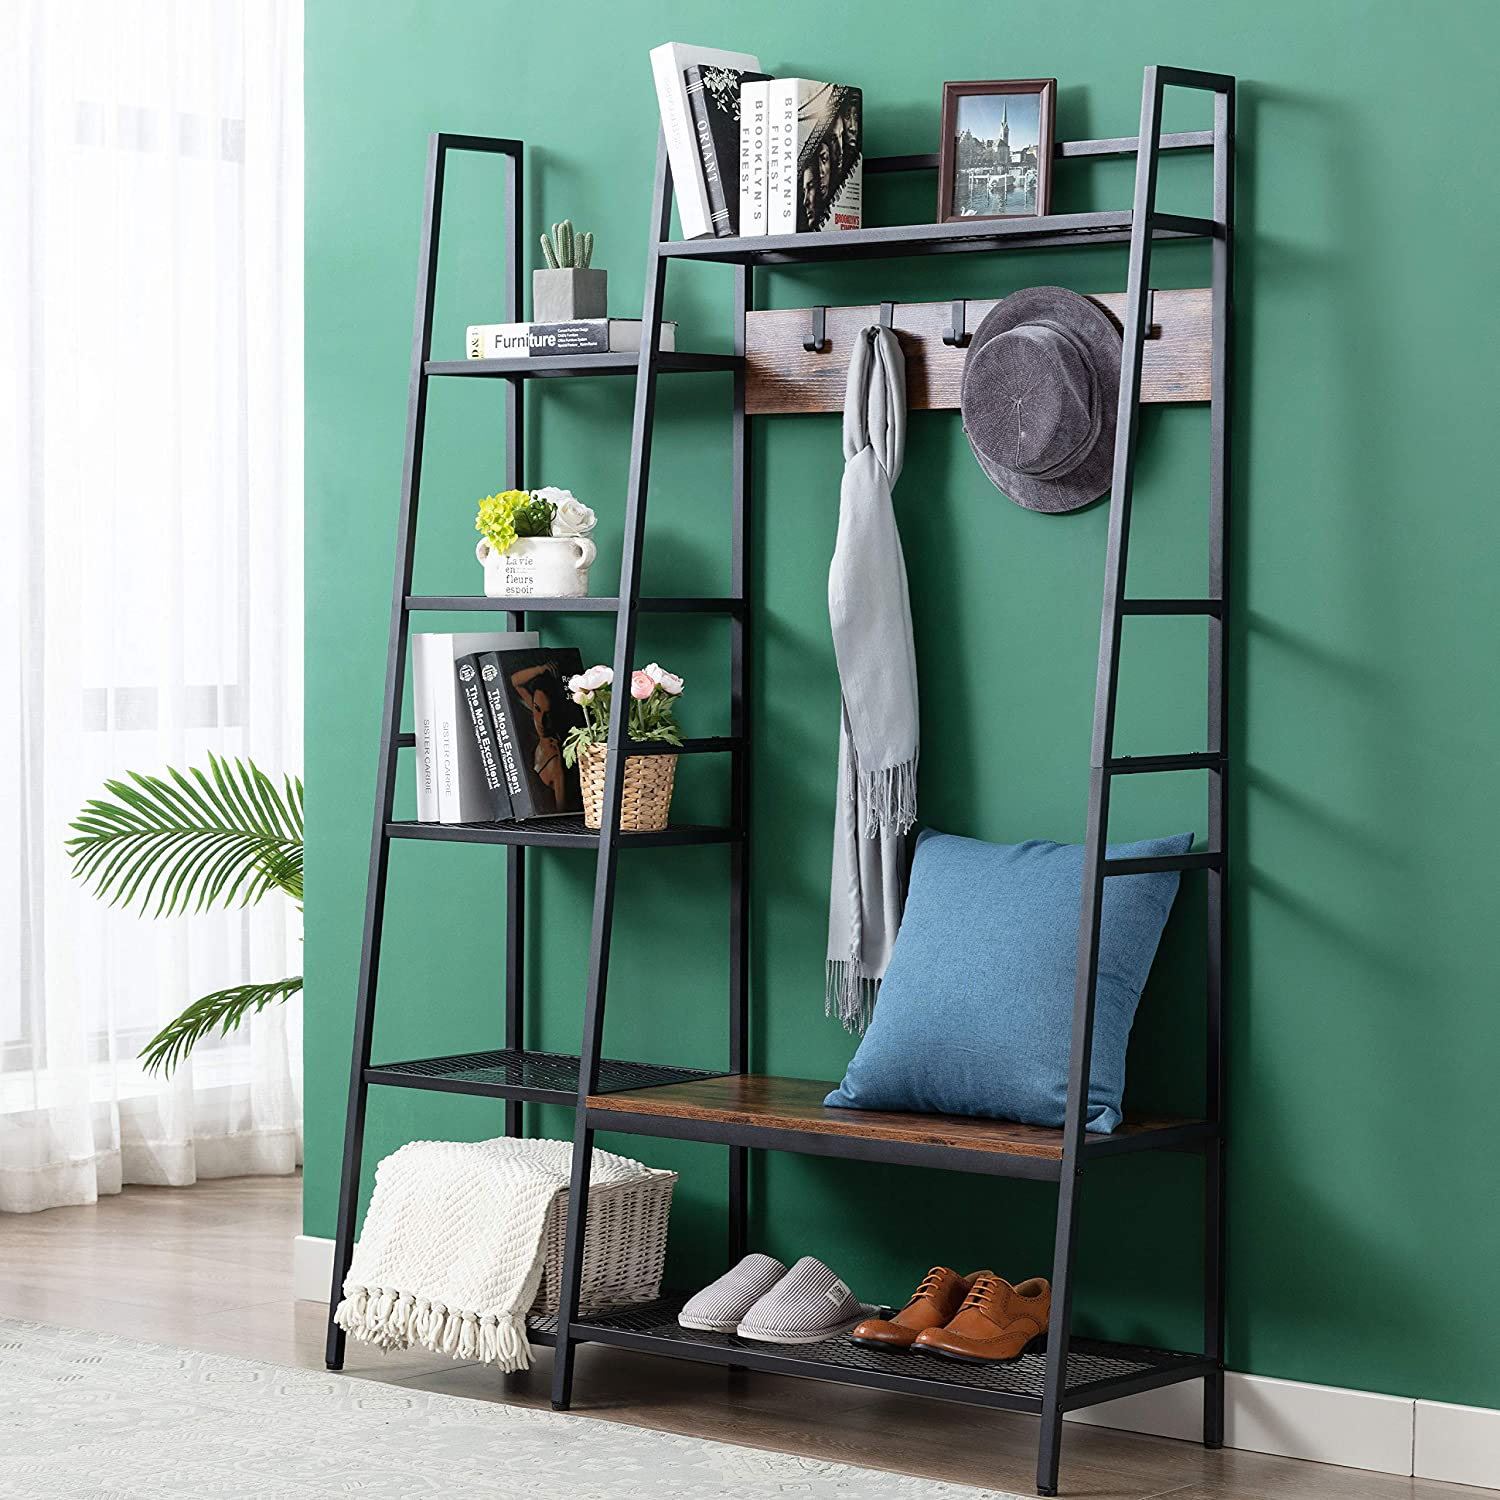 Coat free Superior Rack Shoe Bench 3-in-1 Multi Hall with Storage Tree